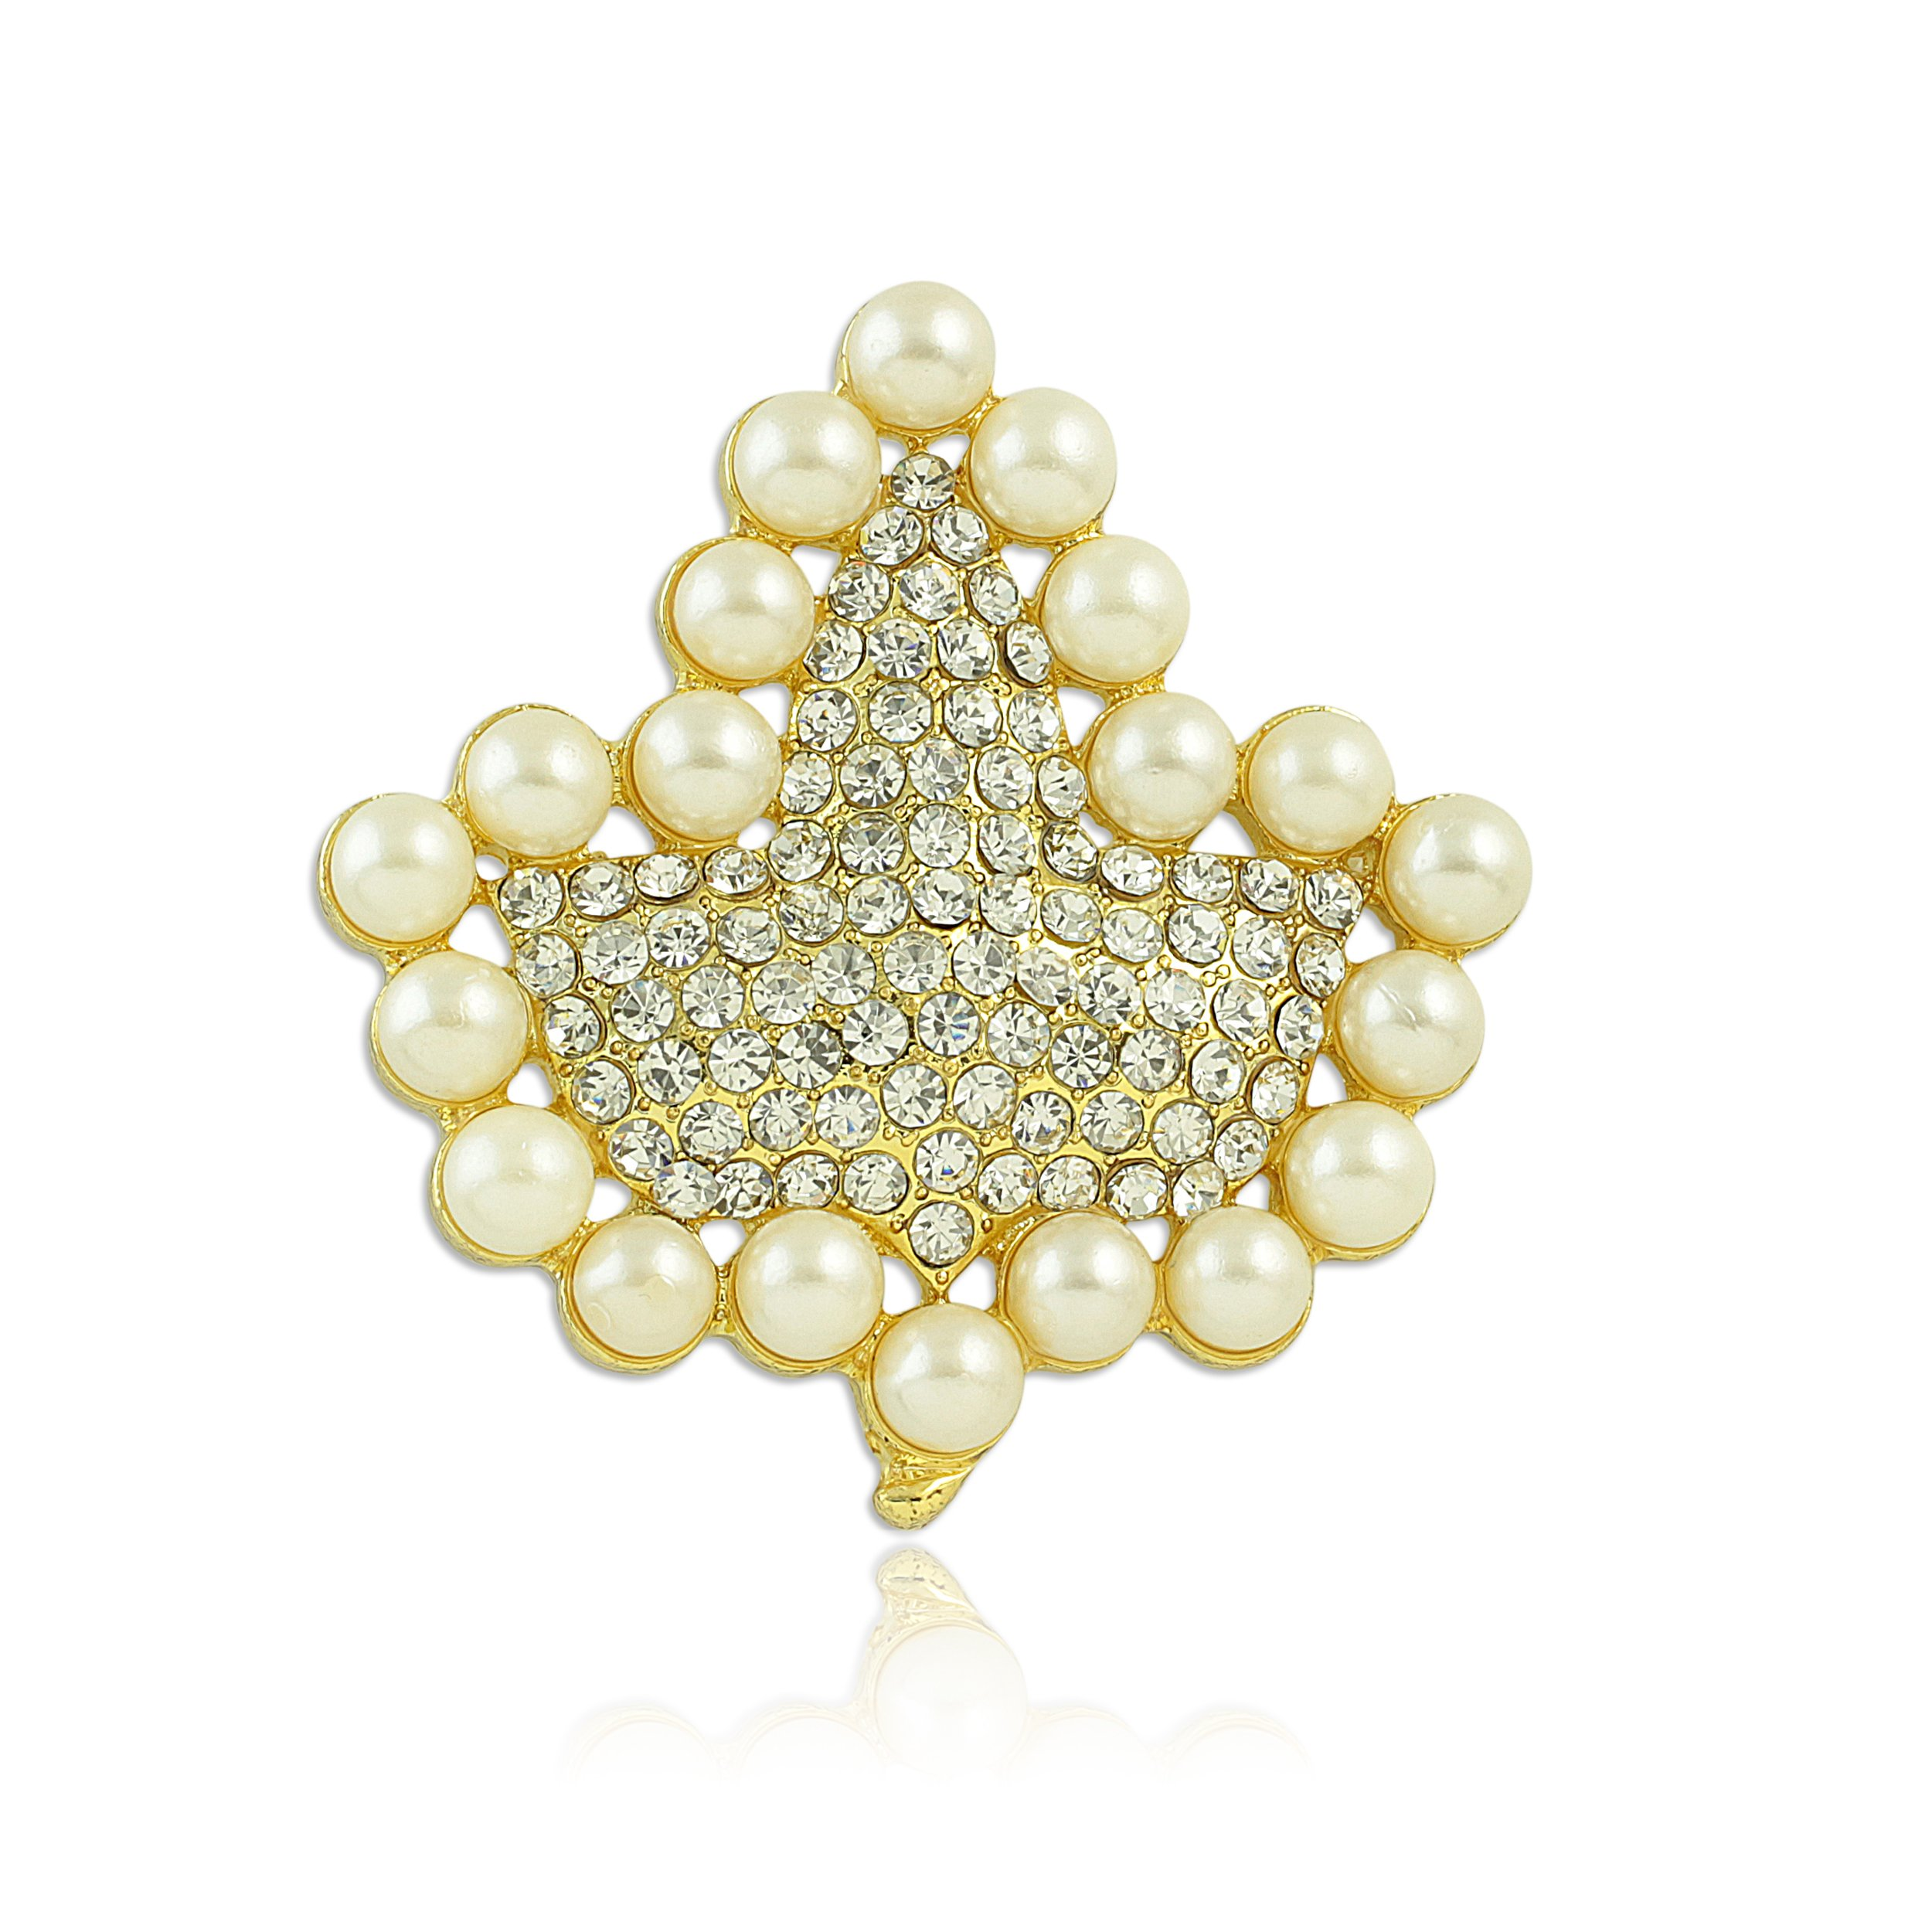 Sparkling Faux Pearl and Rhinestone Ivy Brooch (Gold Tone)